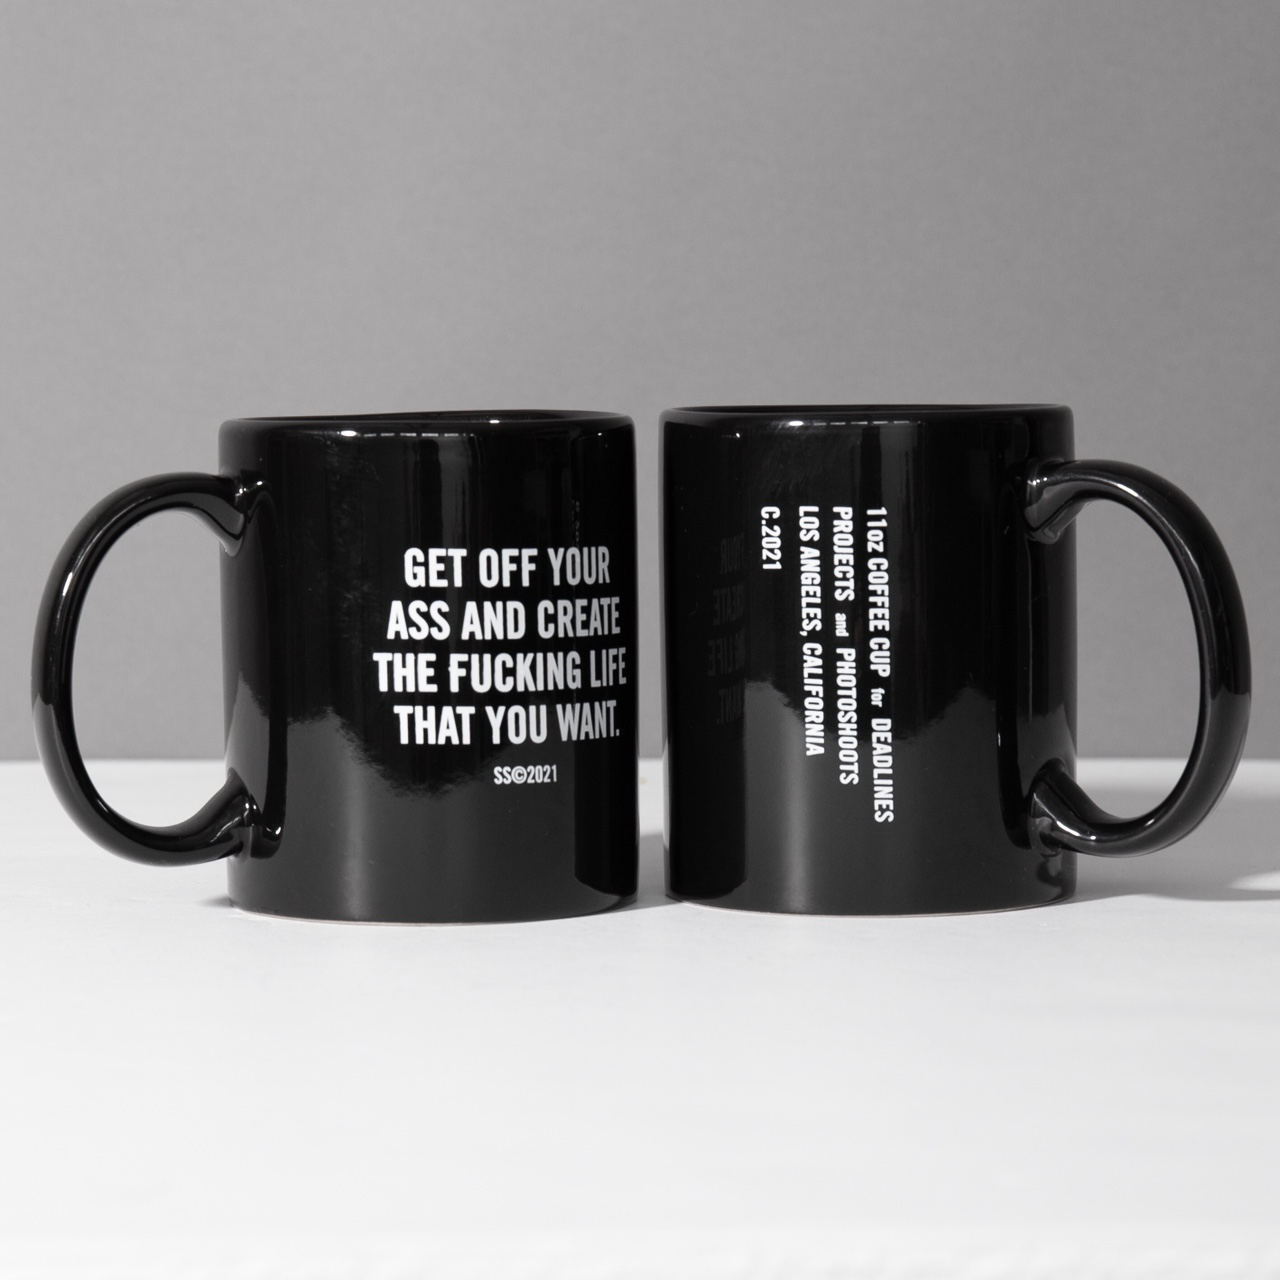 Product Image 1 - Steezy Studios SS©️2021 Coffee Cup.